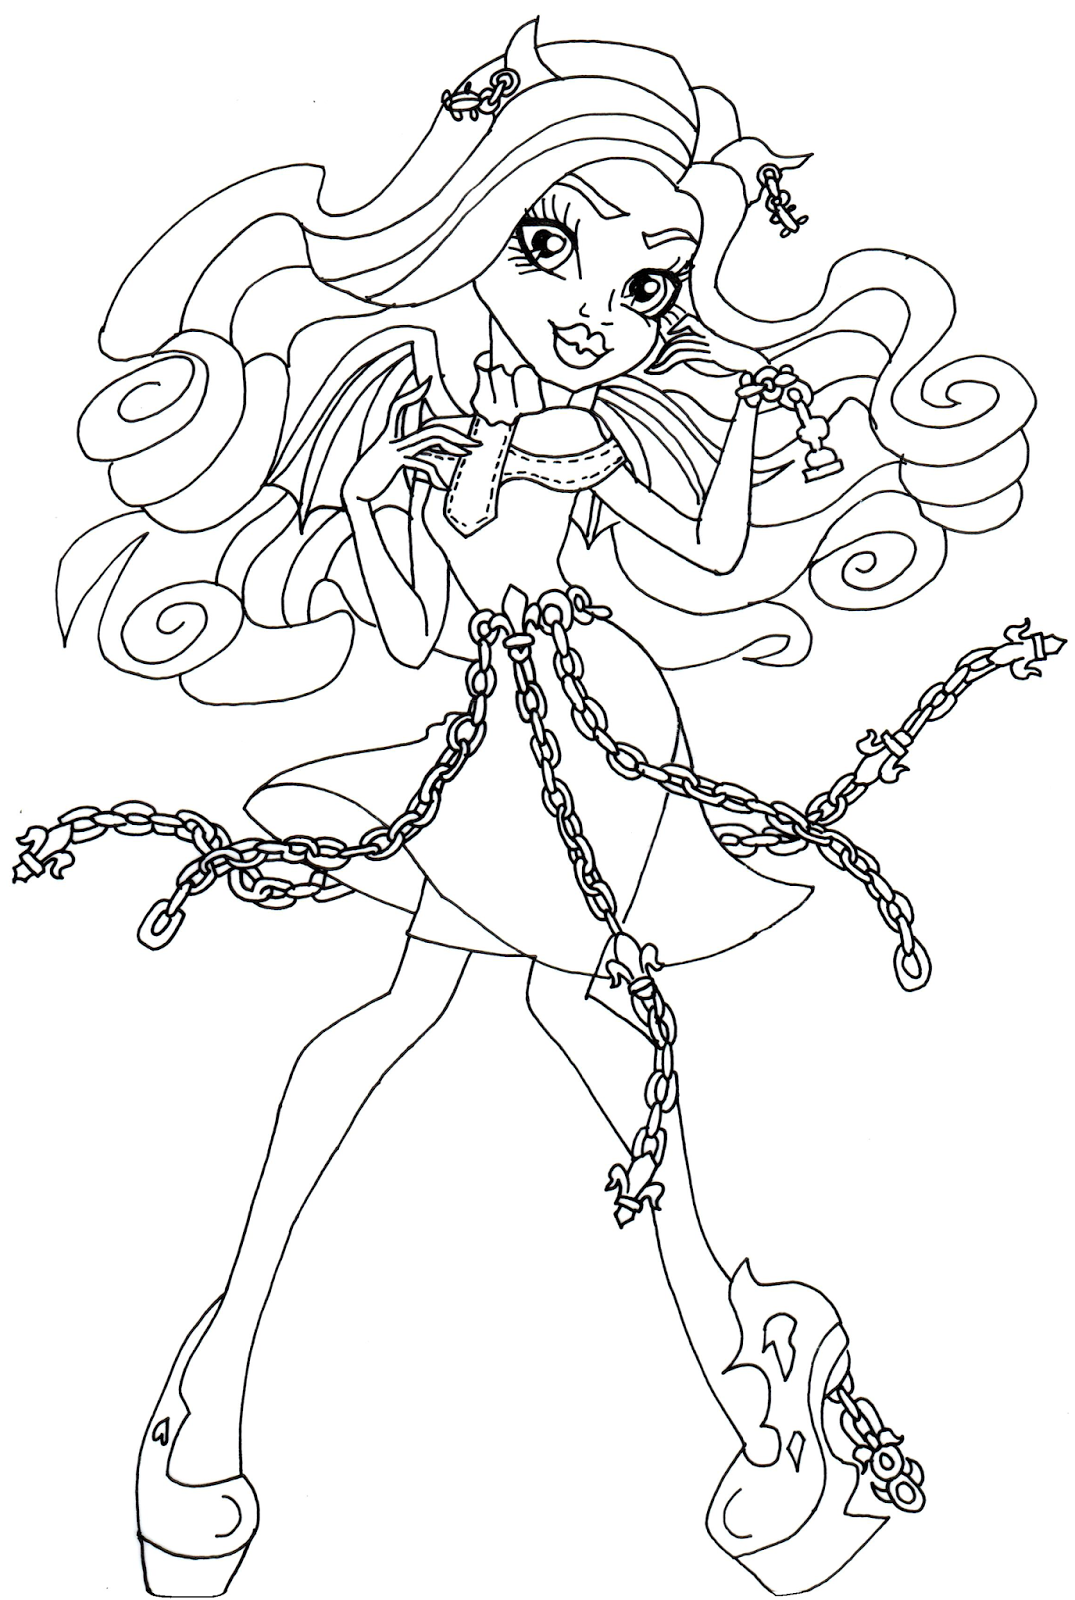 Haunted Rochelle Goyle Monster High Coloring Page Png 1075 1600 Coloring Books Coloring Pages Dance Coloring Pages